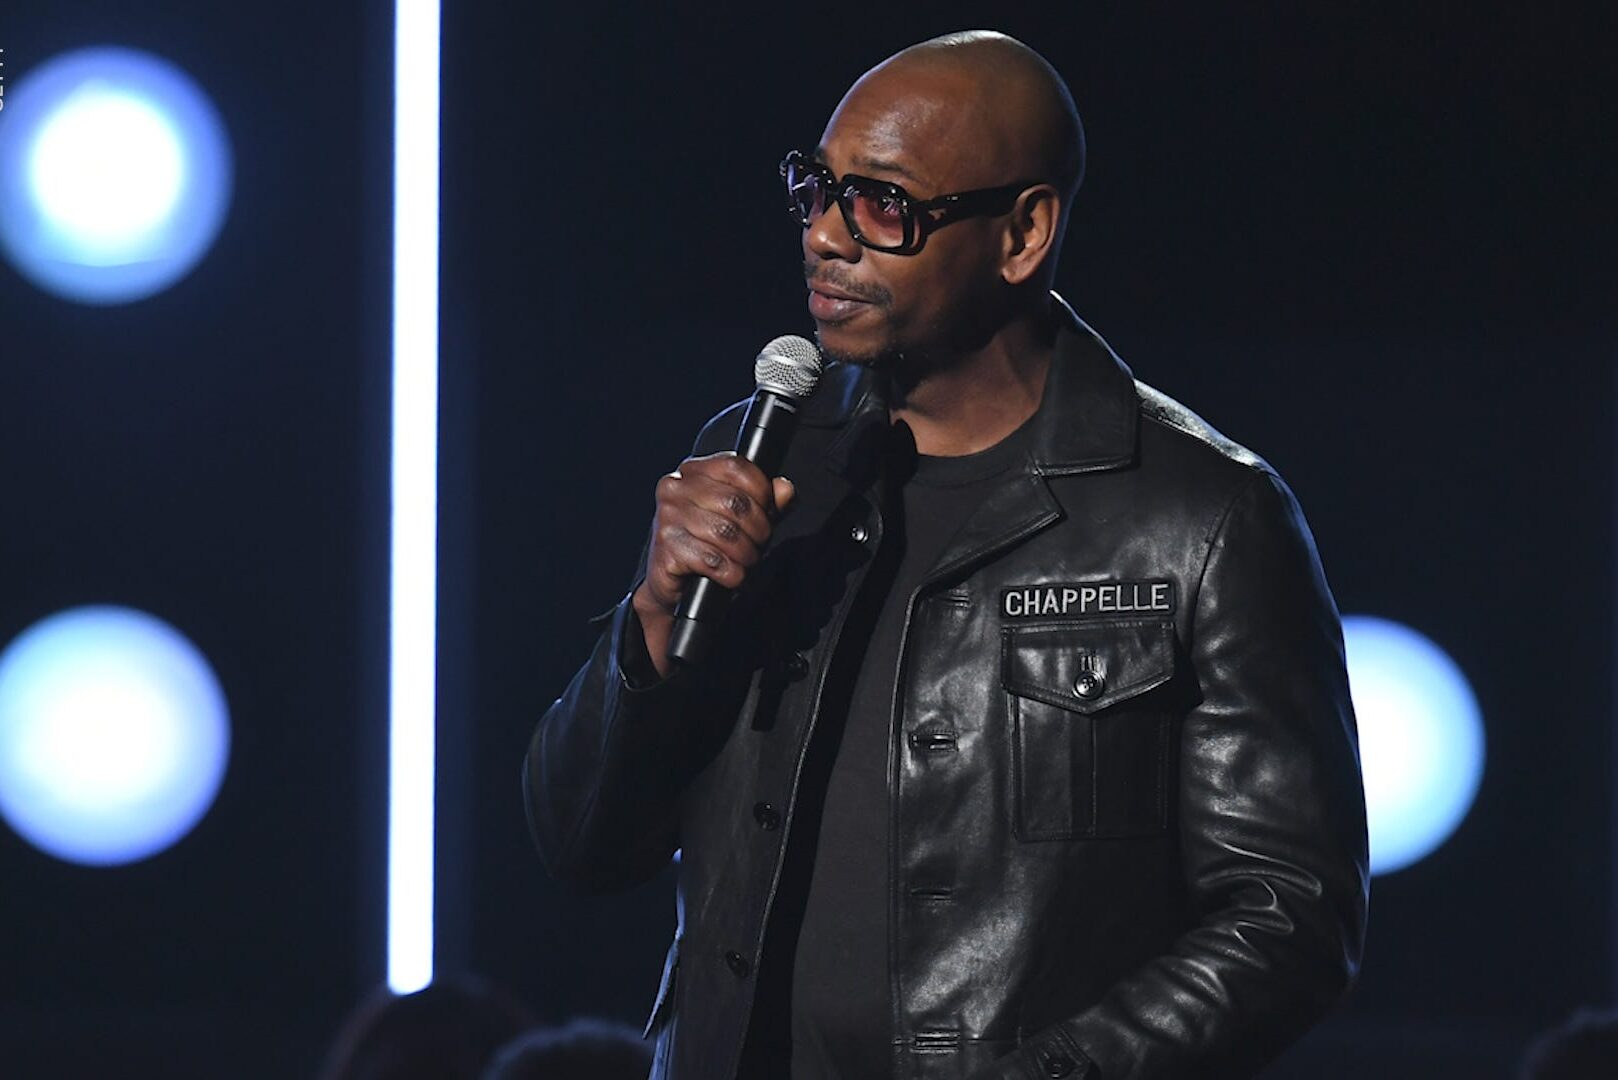 Dave Chappelle Gets Chappelle's Show Pulled Off Streaming